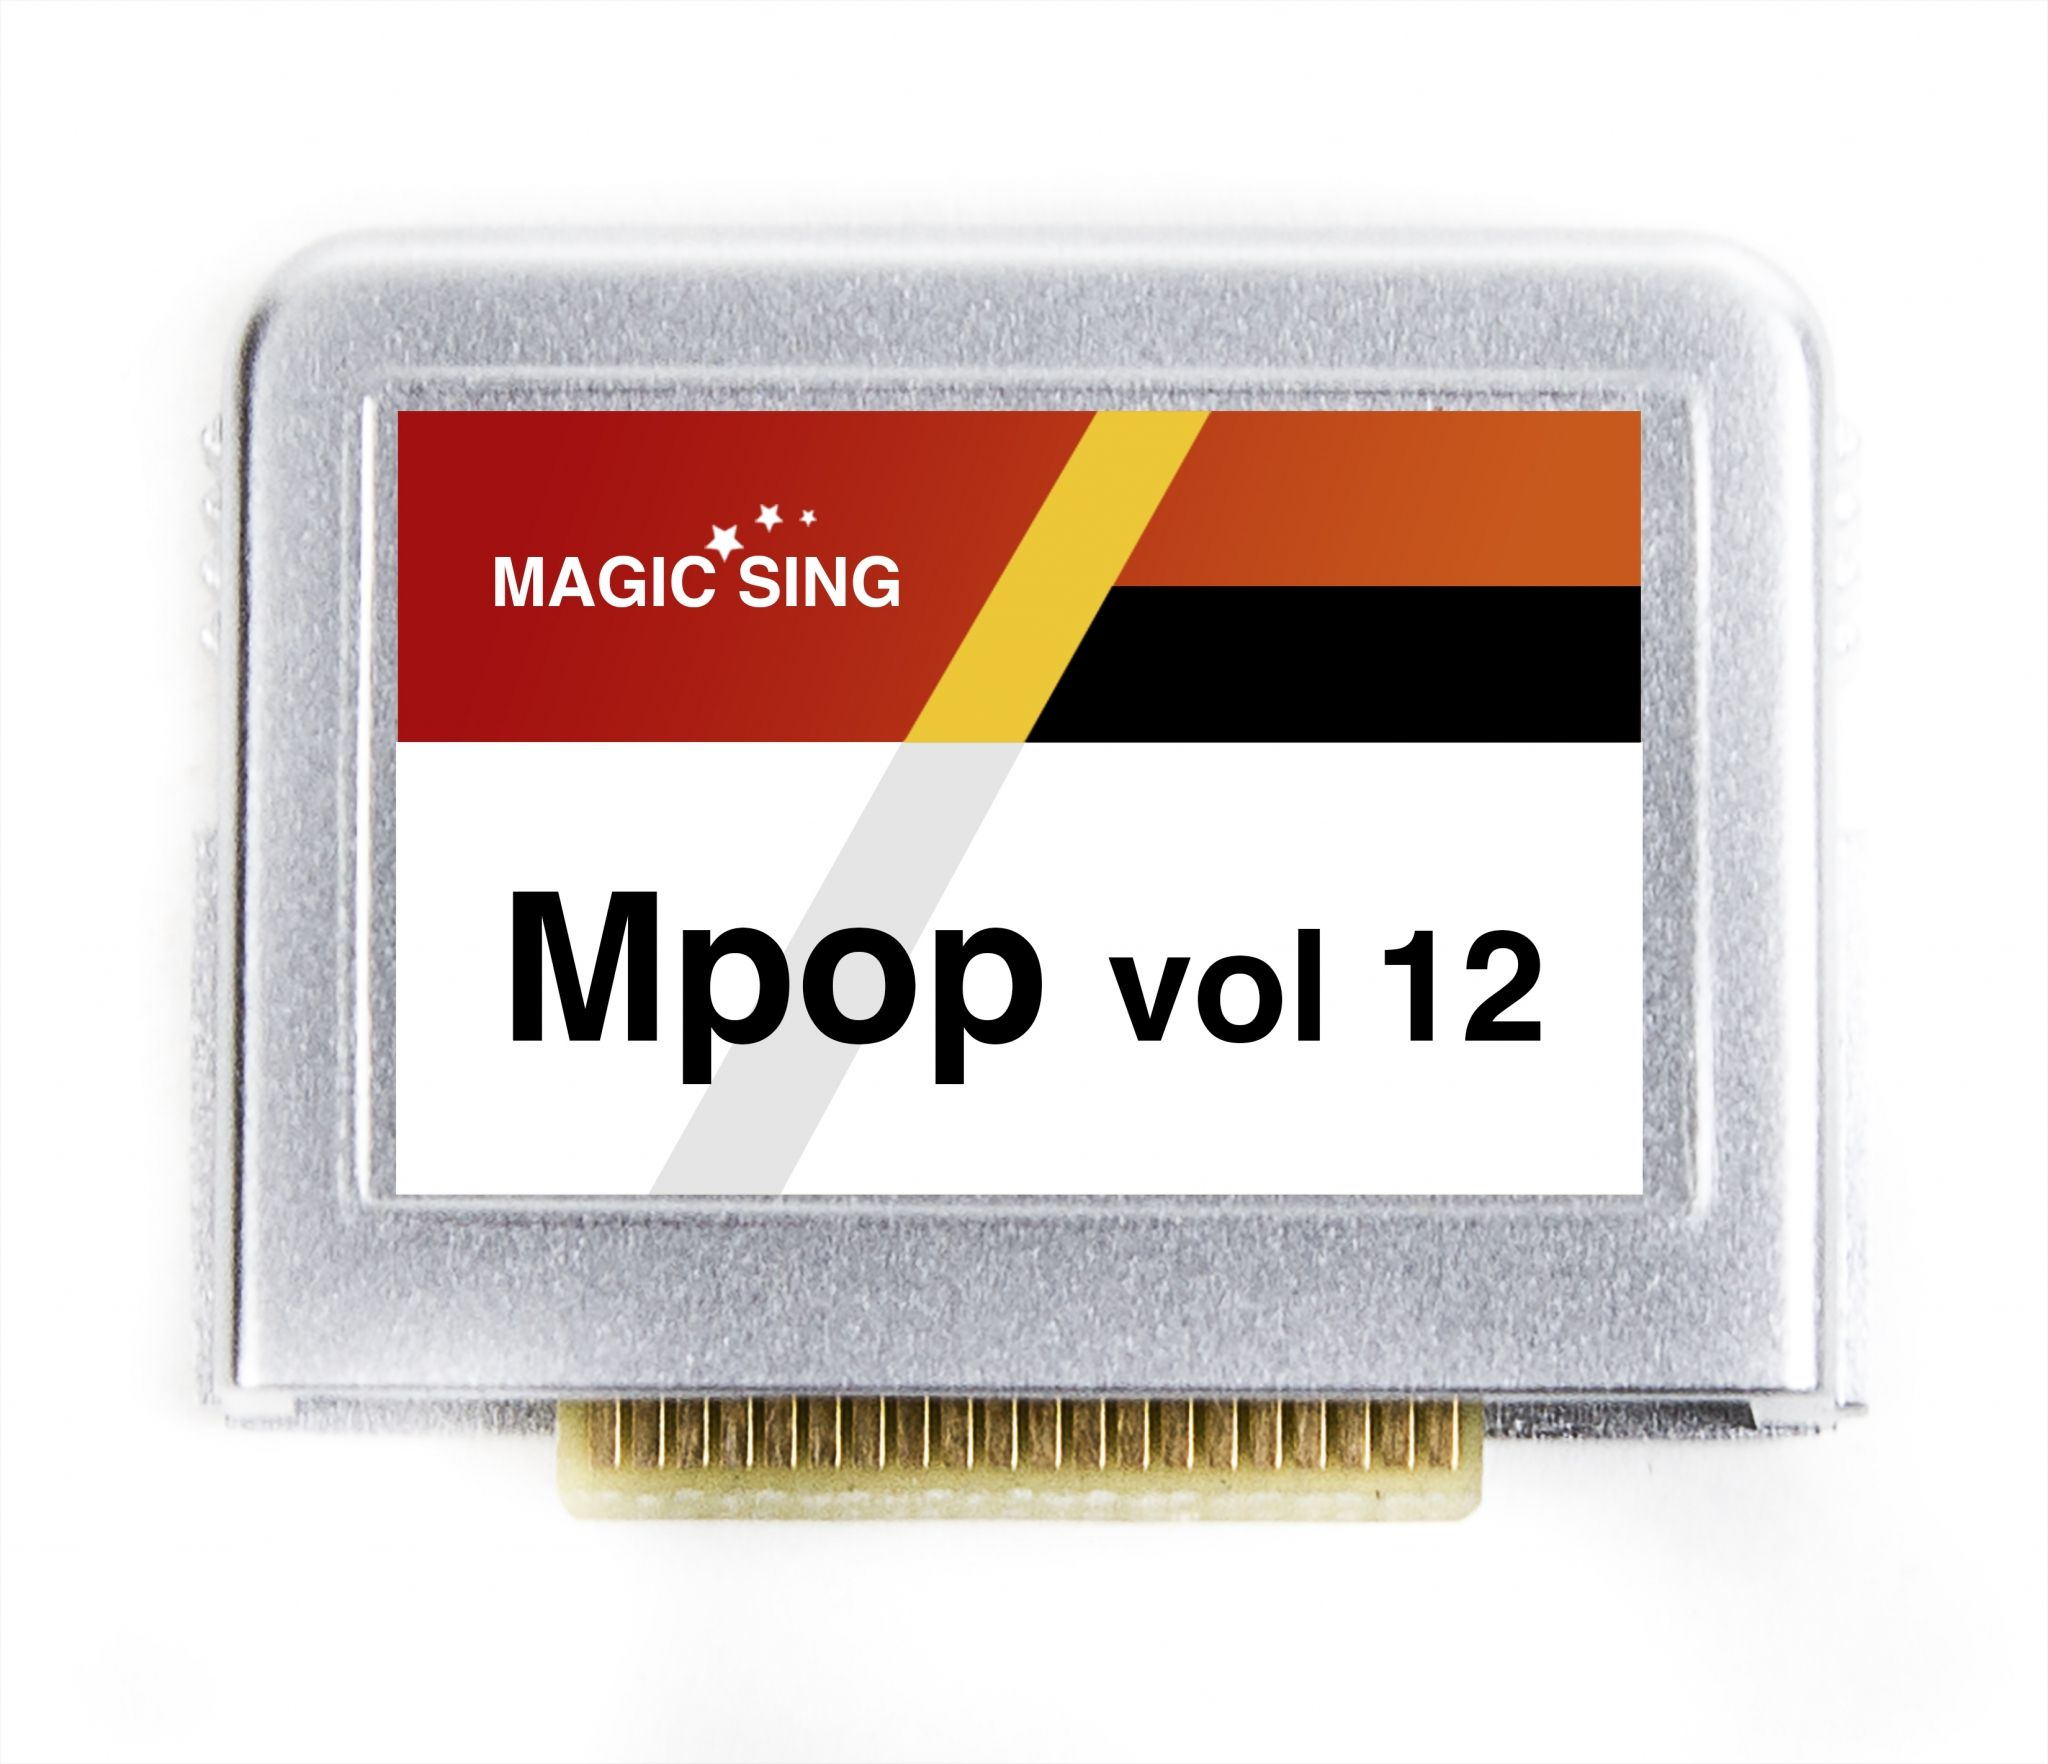 Mpop 12 (Variety classics, folk, showtunes, standards)